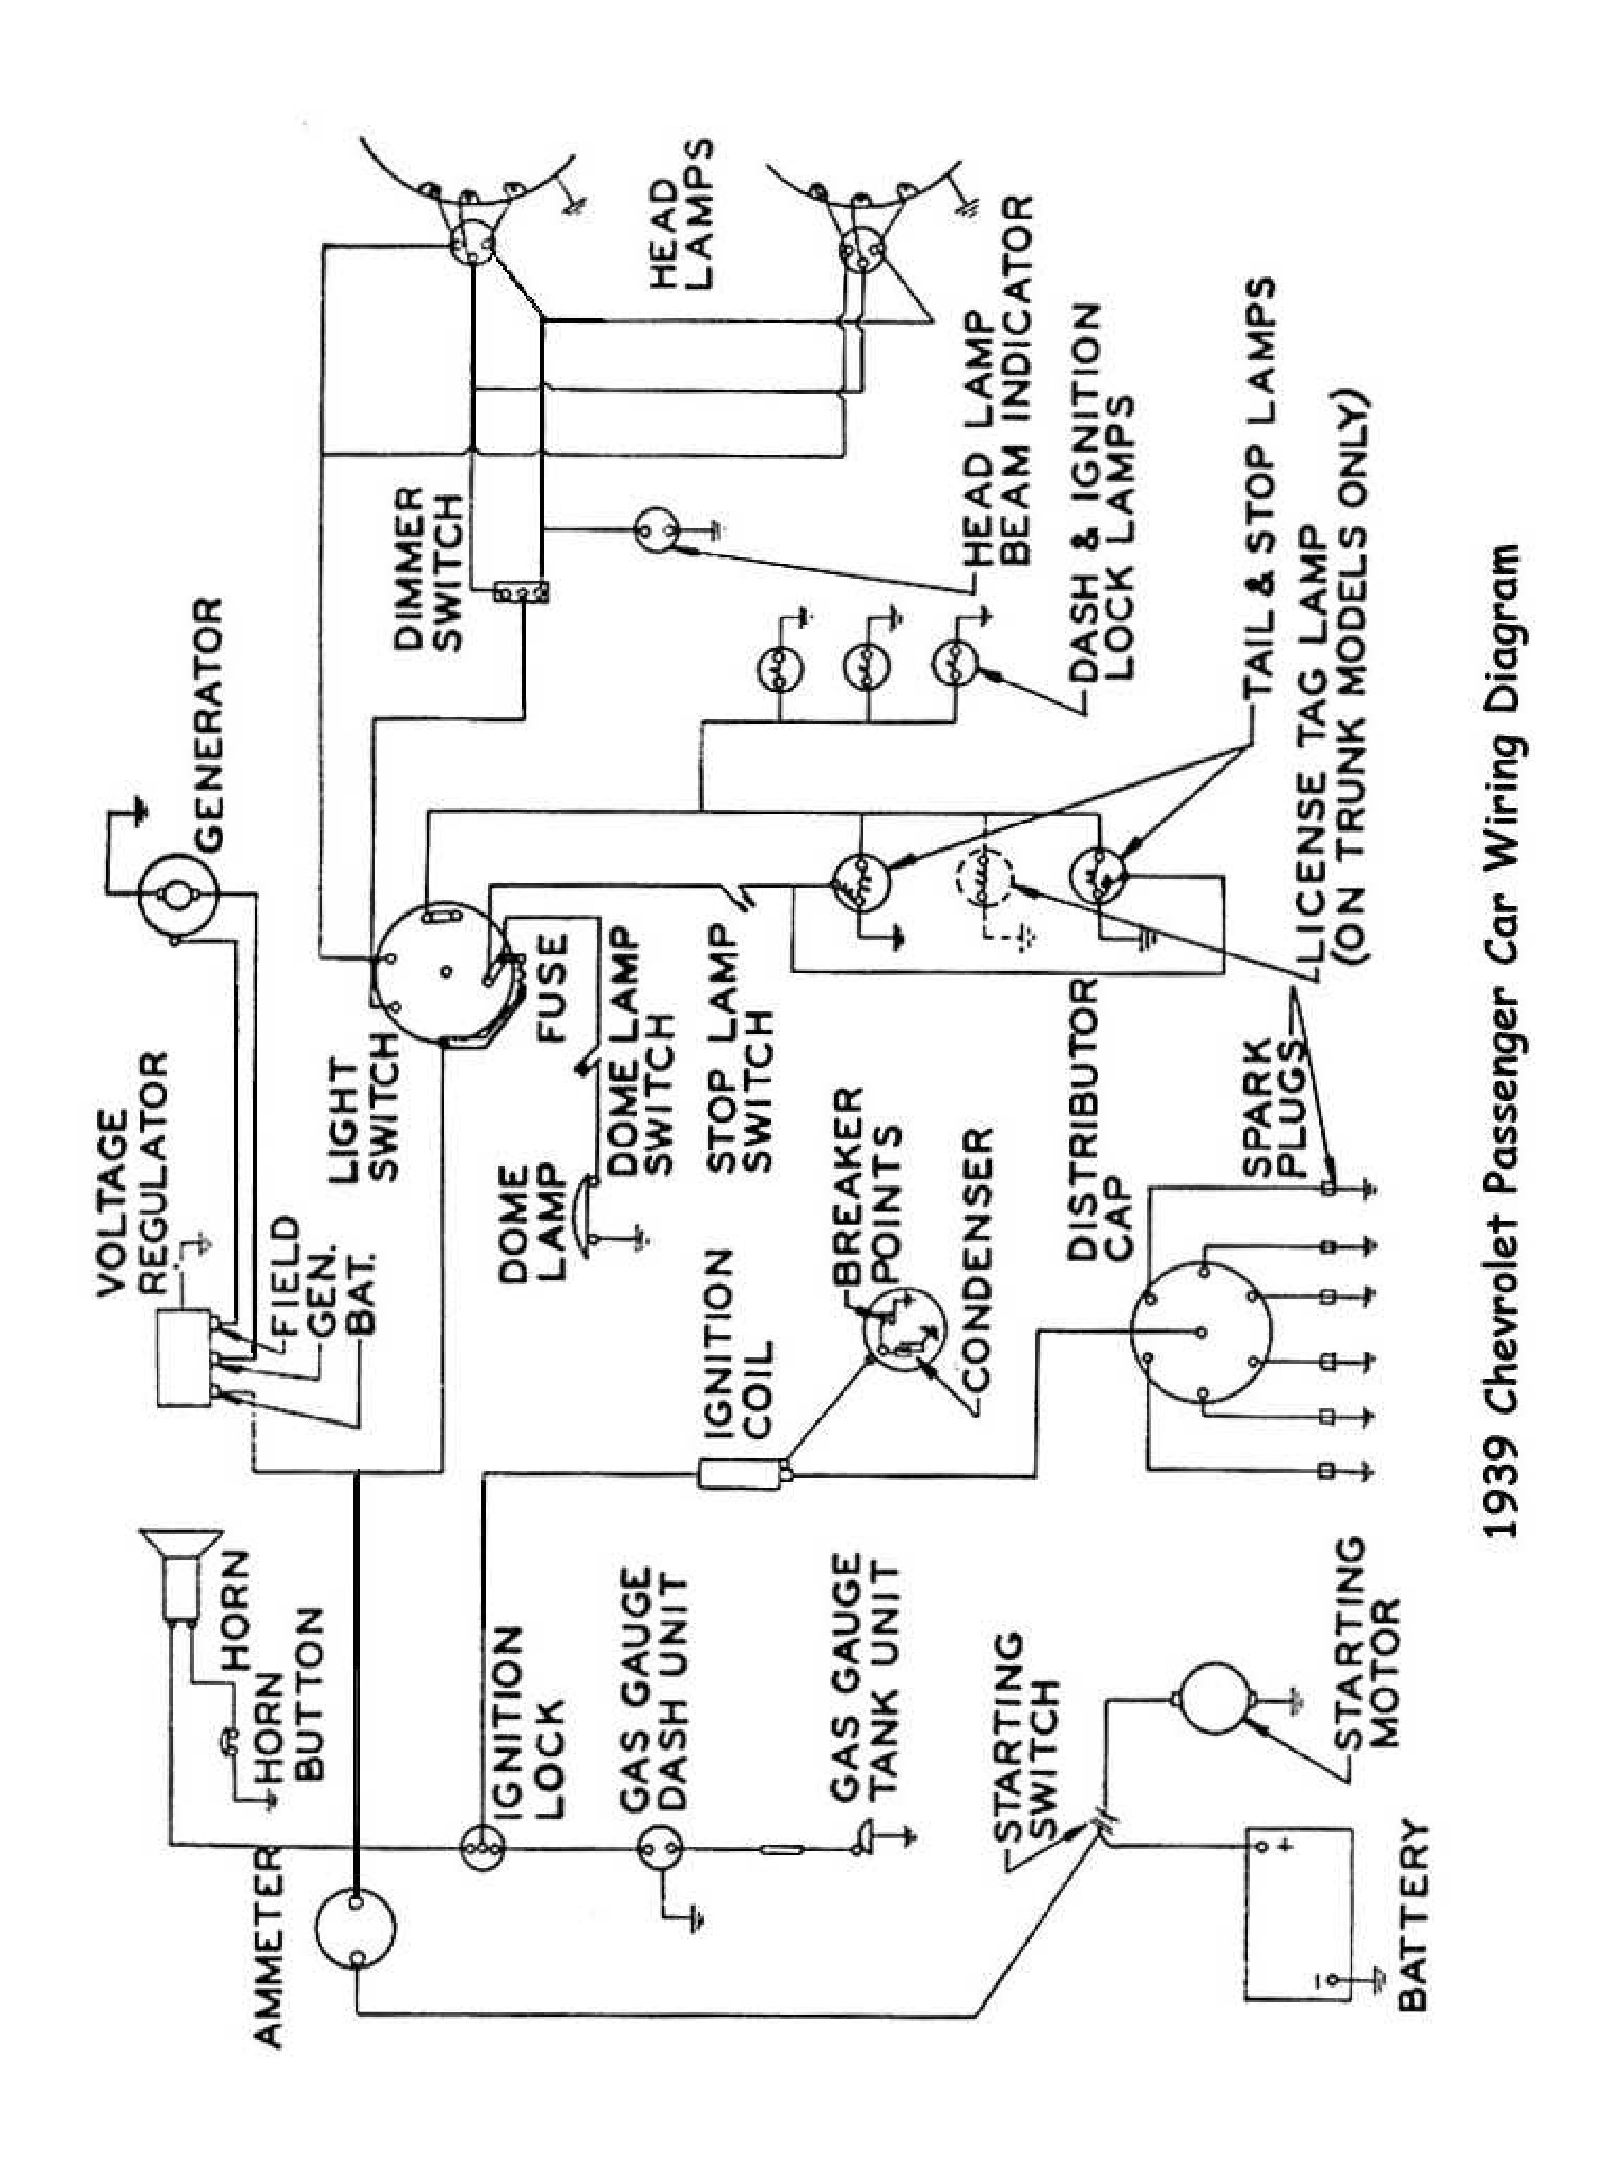 39car simple chevy wiring diagram chevy truck wiring \u2022 wiring diagrams 1953 Ford Car Wiring Diagram at crackthecode.co